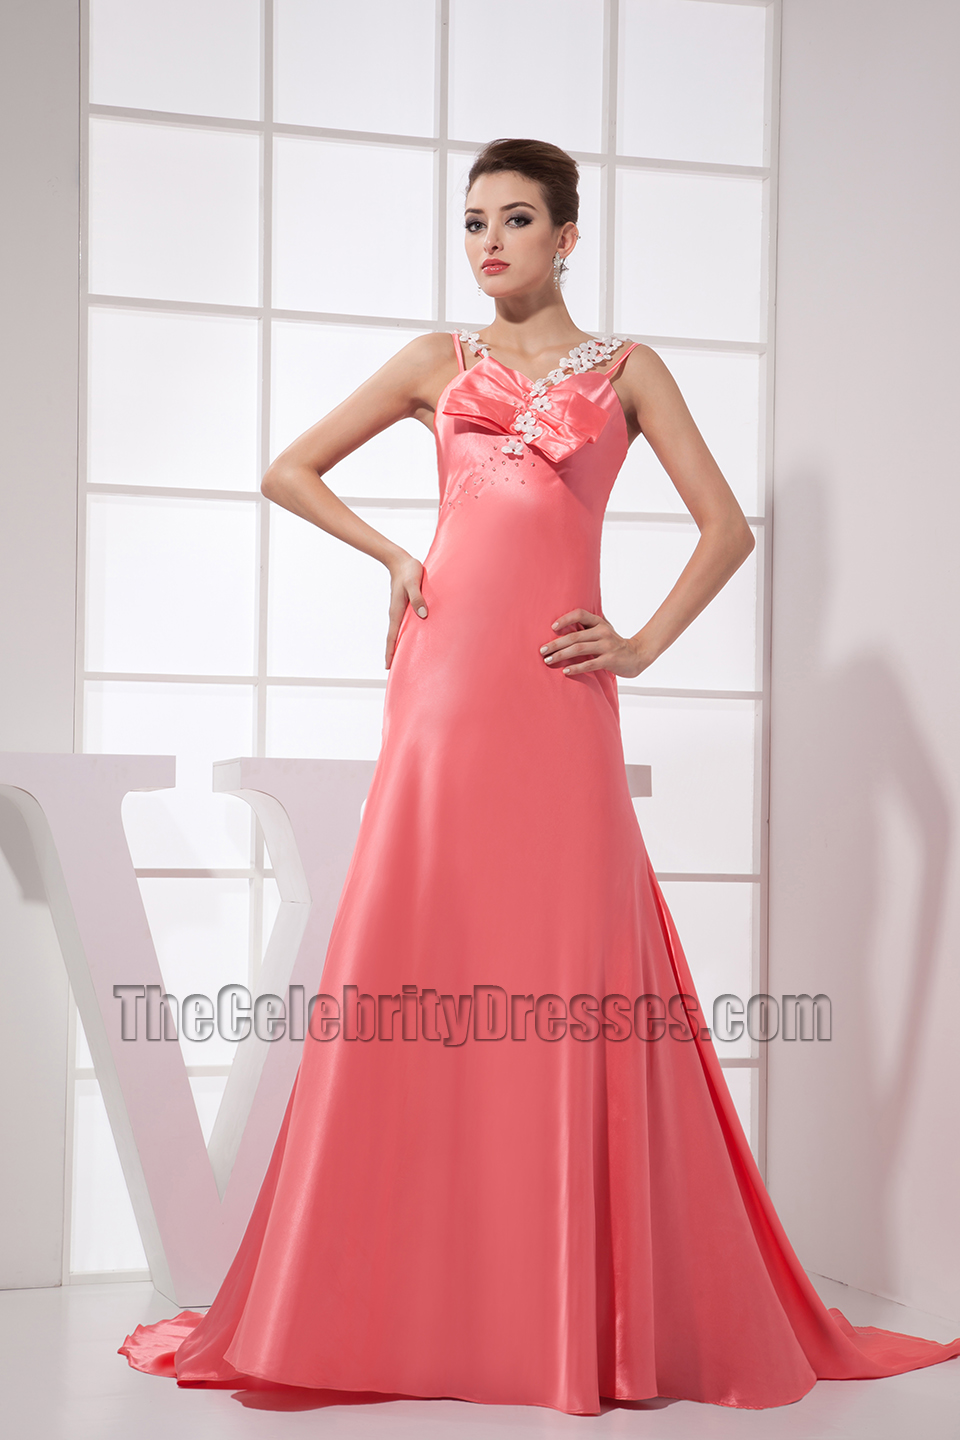 Pink Long Prom Dress Evening Formal Gowns With Beading ...